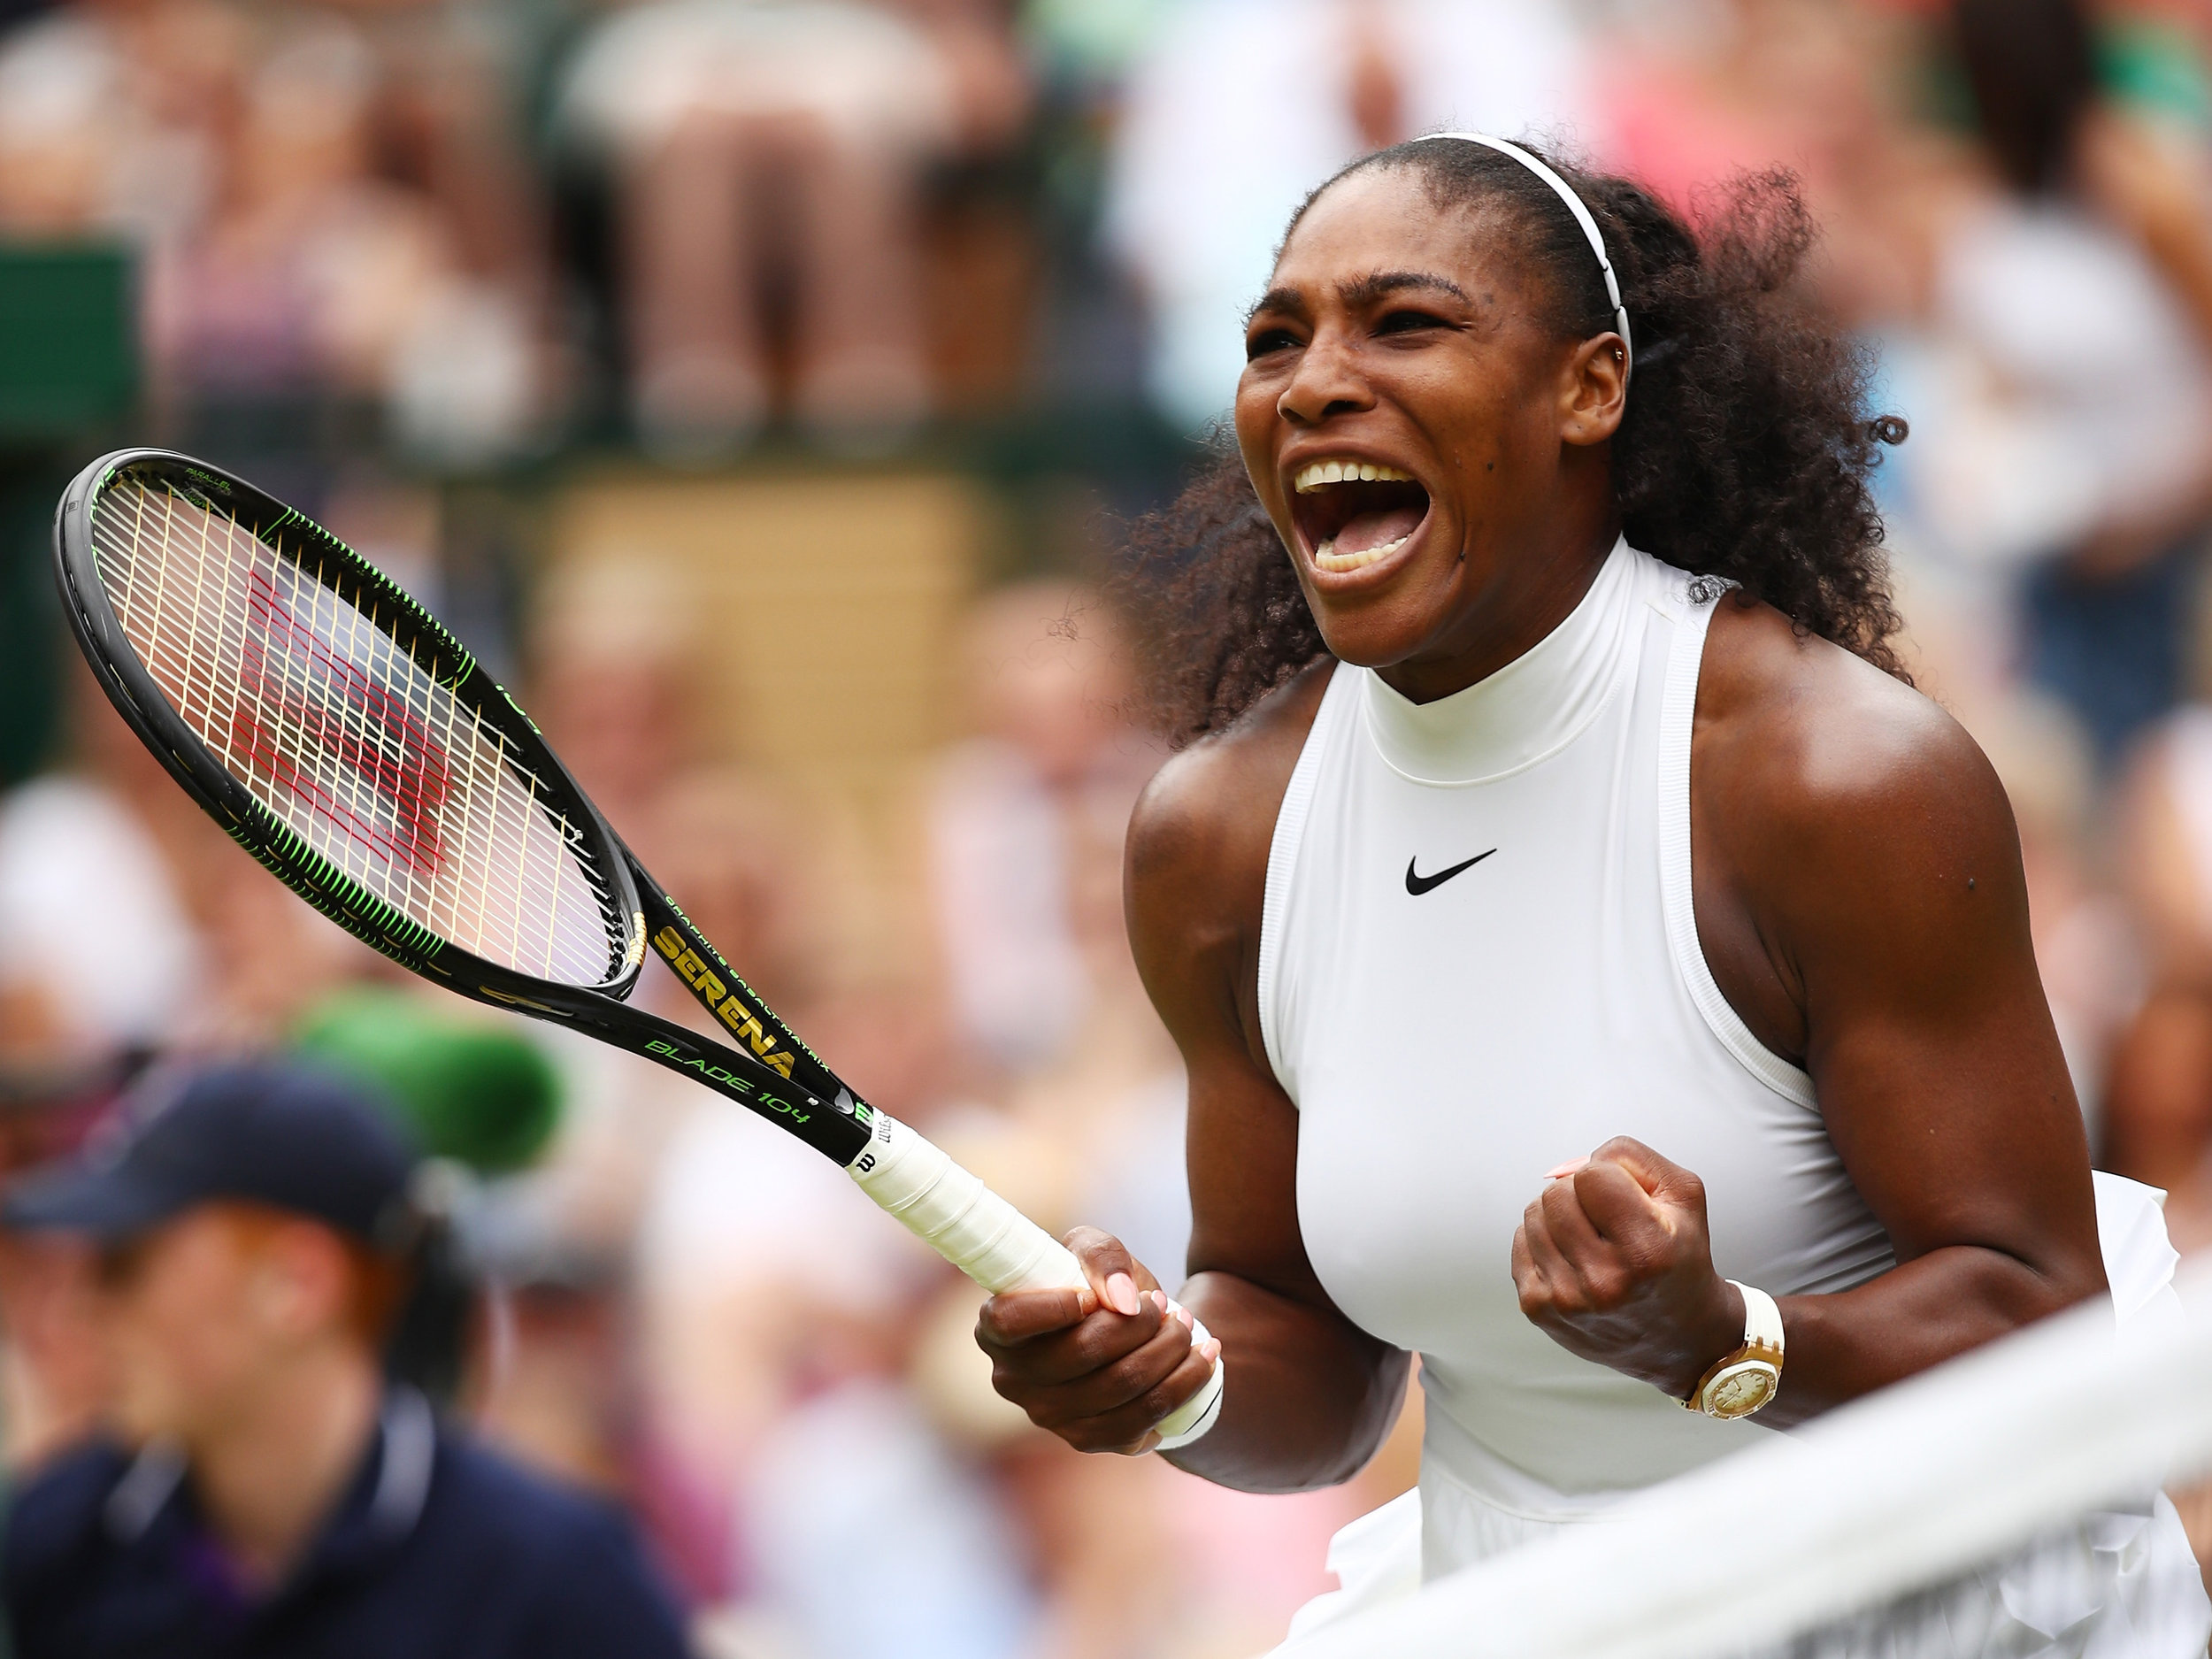 Serena Williams - The record smasher. First tennis player (male or female) to win 23 Grand Slam singles titles in the open era, the only player in history to have won singles titles at least six times in three of the four Grand Slam tournaments, the only player ever to have won two of the four Grand Slams seven times each, the only player ever to win 10 Grand Slam singles titles in two separate decades. Record holder for the most women's singles matches won in grand slams, with a total of 316.